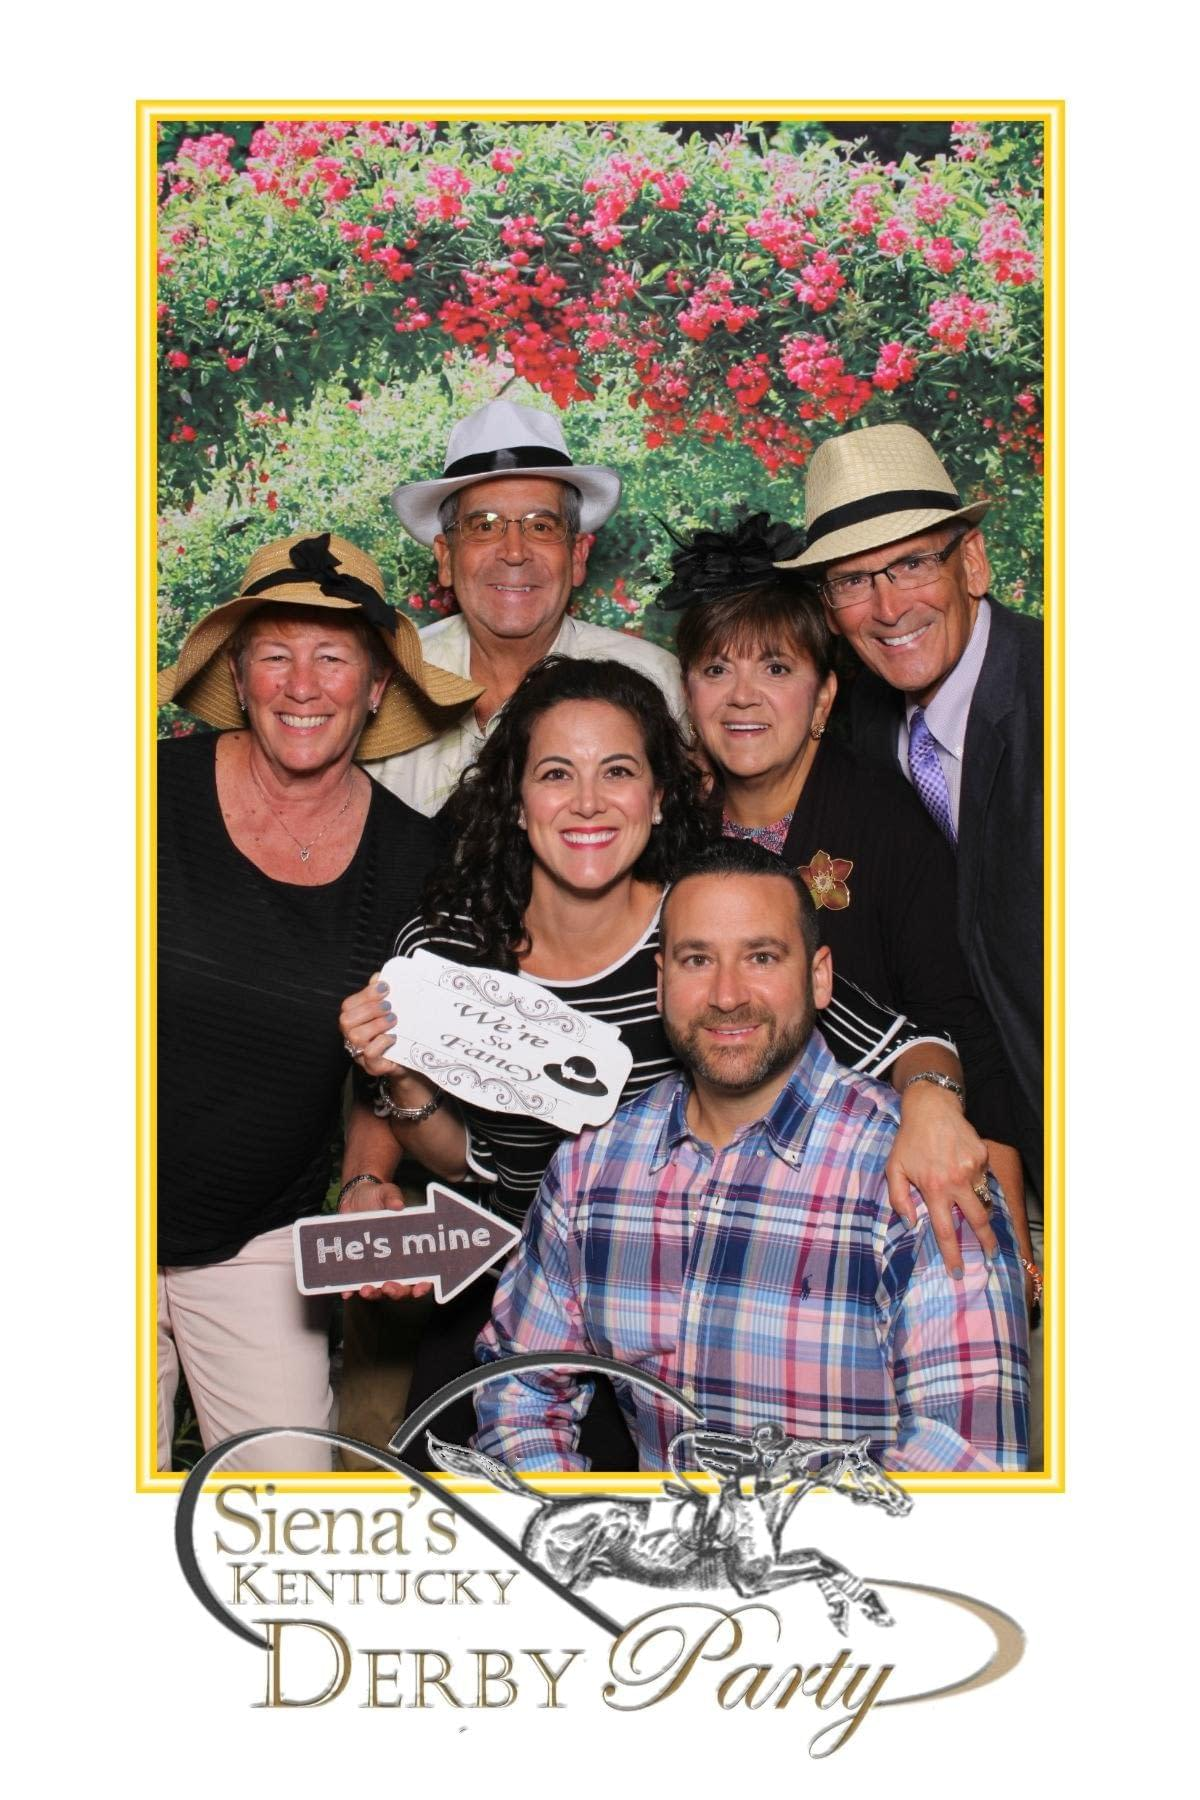 4x6 photo of a Kentucky derby party